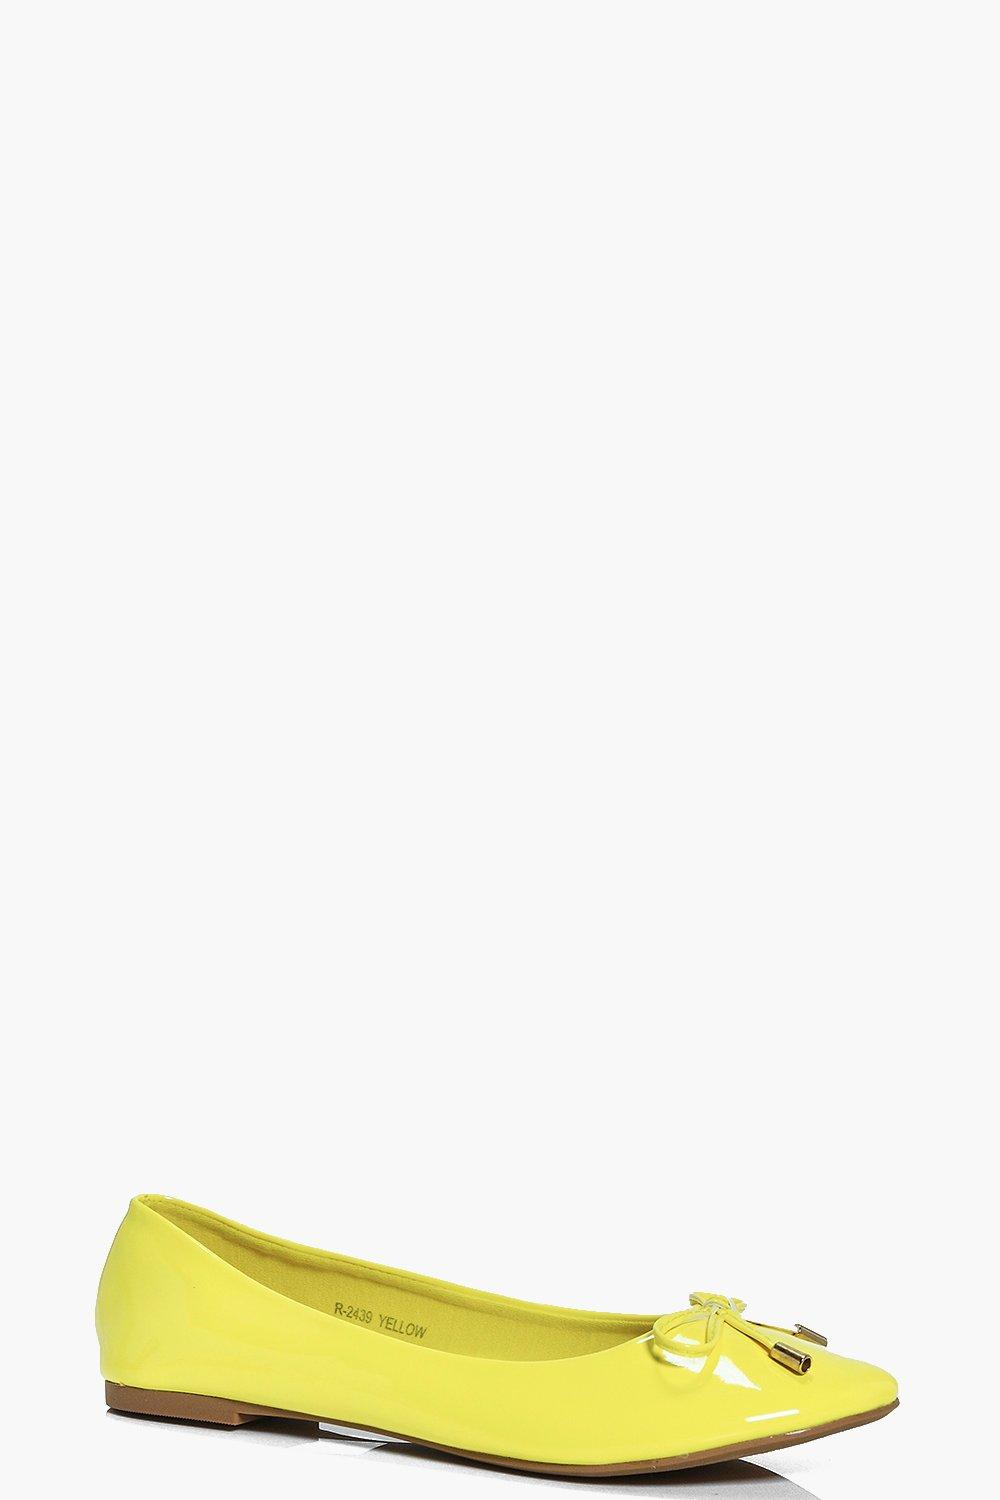 Bow Trim Ballet Shoes - yellow